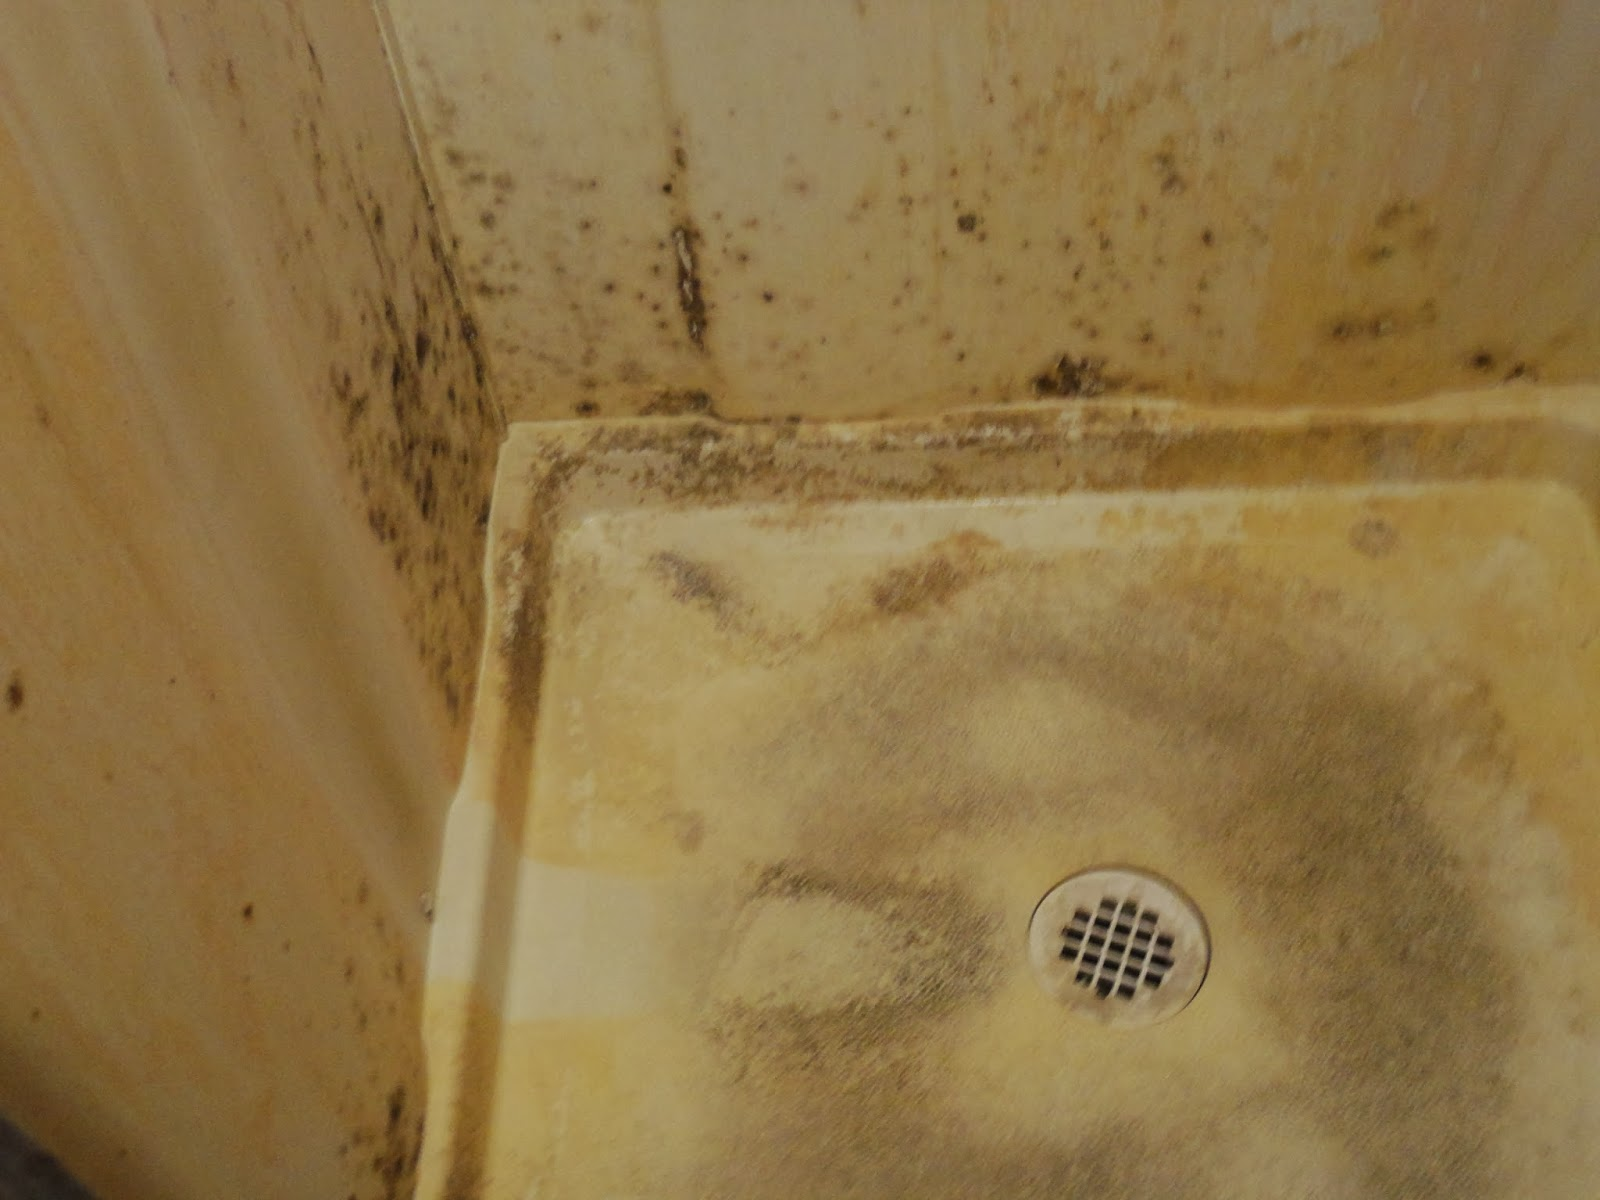 Black Mold On Bathroom Tile 2017 2018 Best Cars Reviews